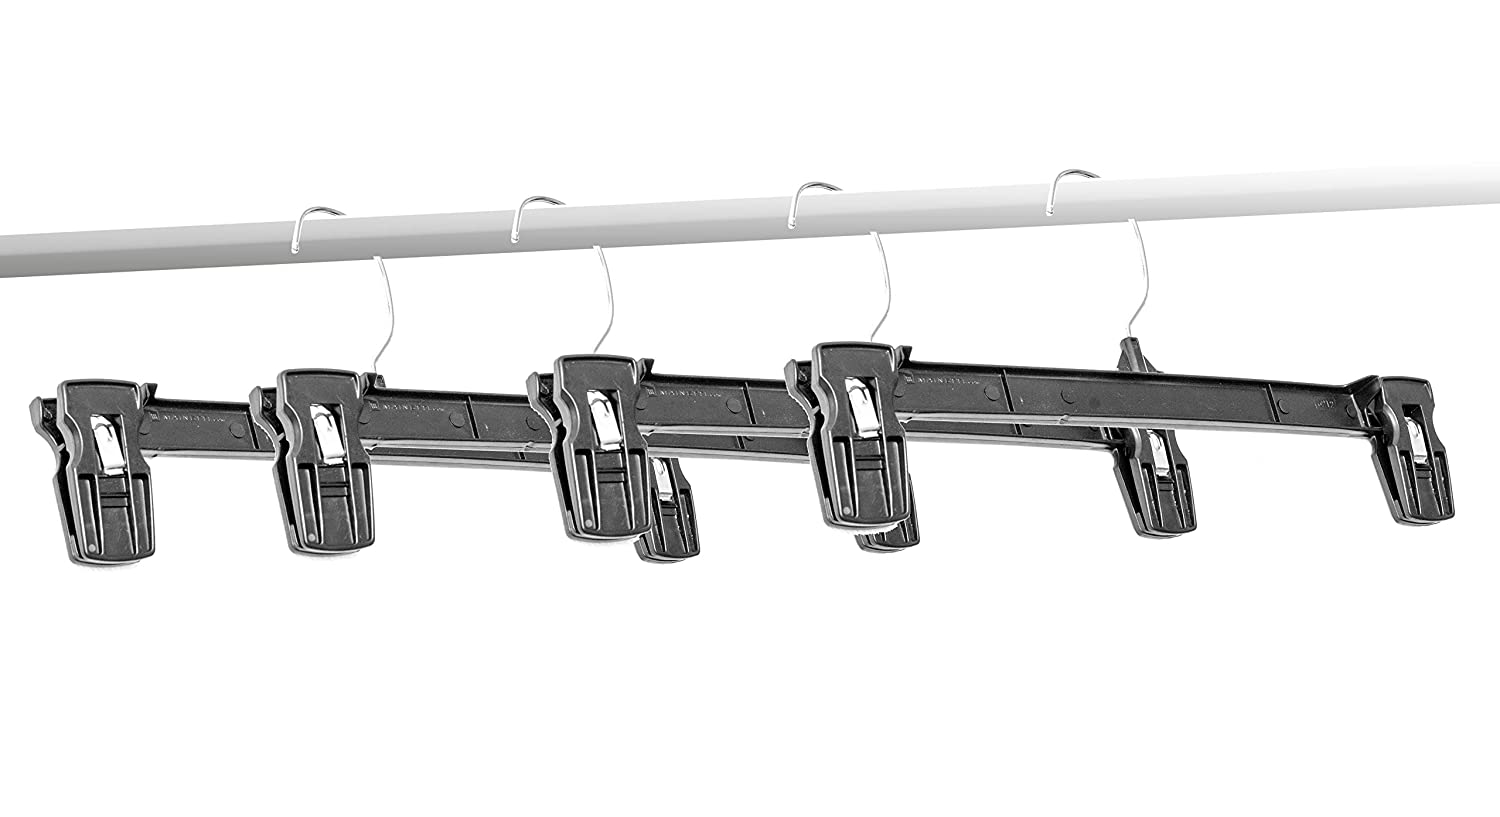 Stores and Home Amiff Clothes Hangers Plastic Hangers for Pants and Skirts Non-Slip Grip and Fixed Hook Storage and Organization. 10 Pinch Grip Hangers Pack of 10 Black Hangers